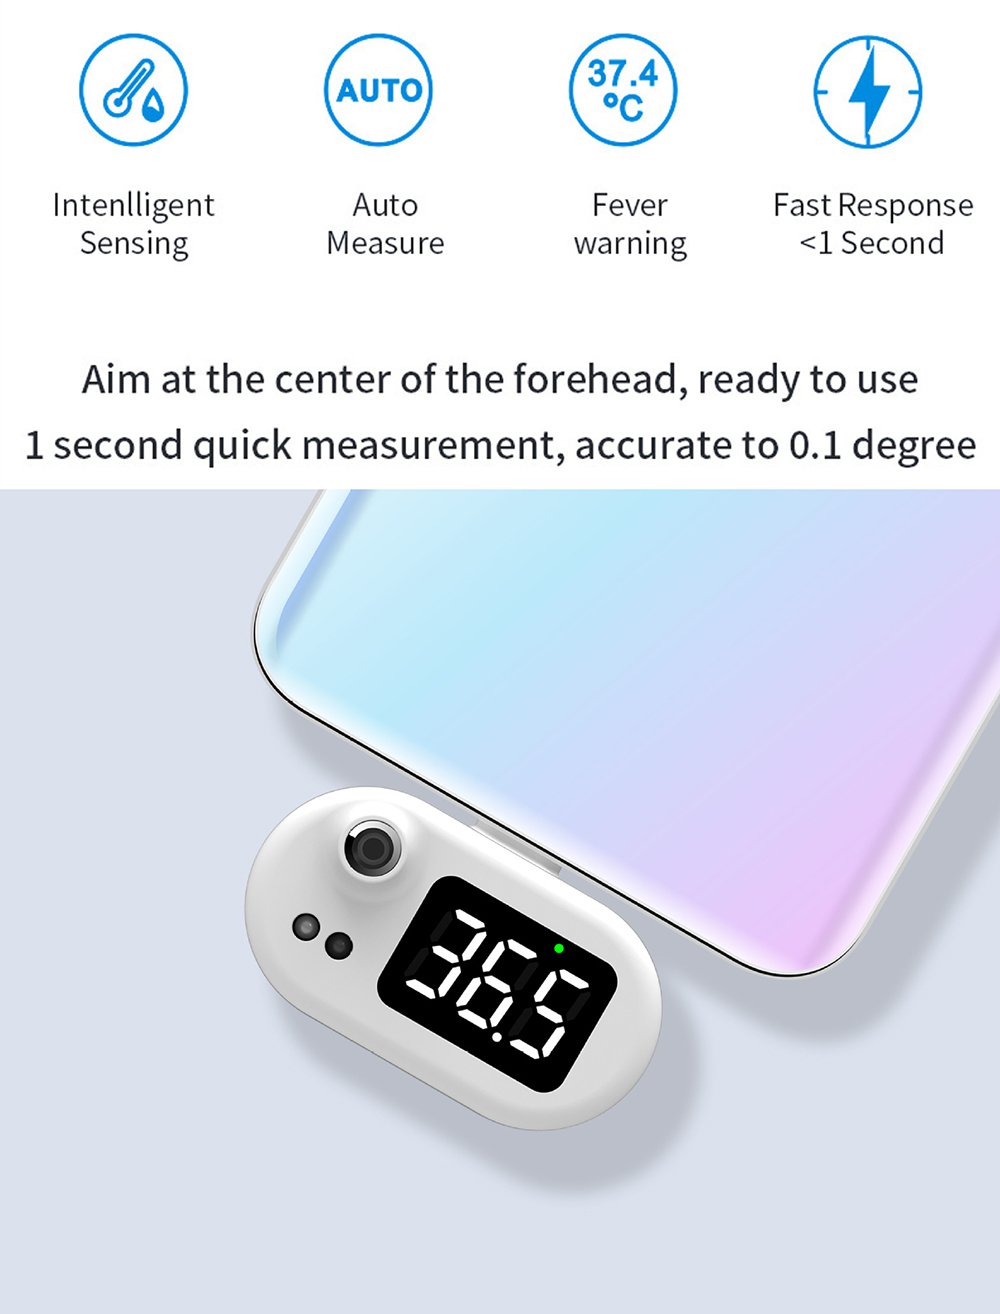 K7 Intelligent Thermometer Automatic Infrared Mobile Phone Non-contact Human Body Thermometer - Black android Features